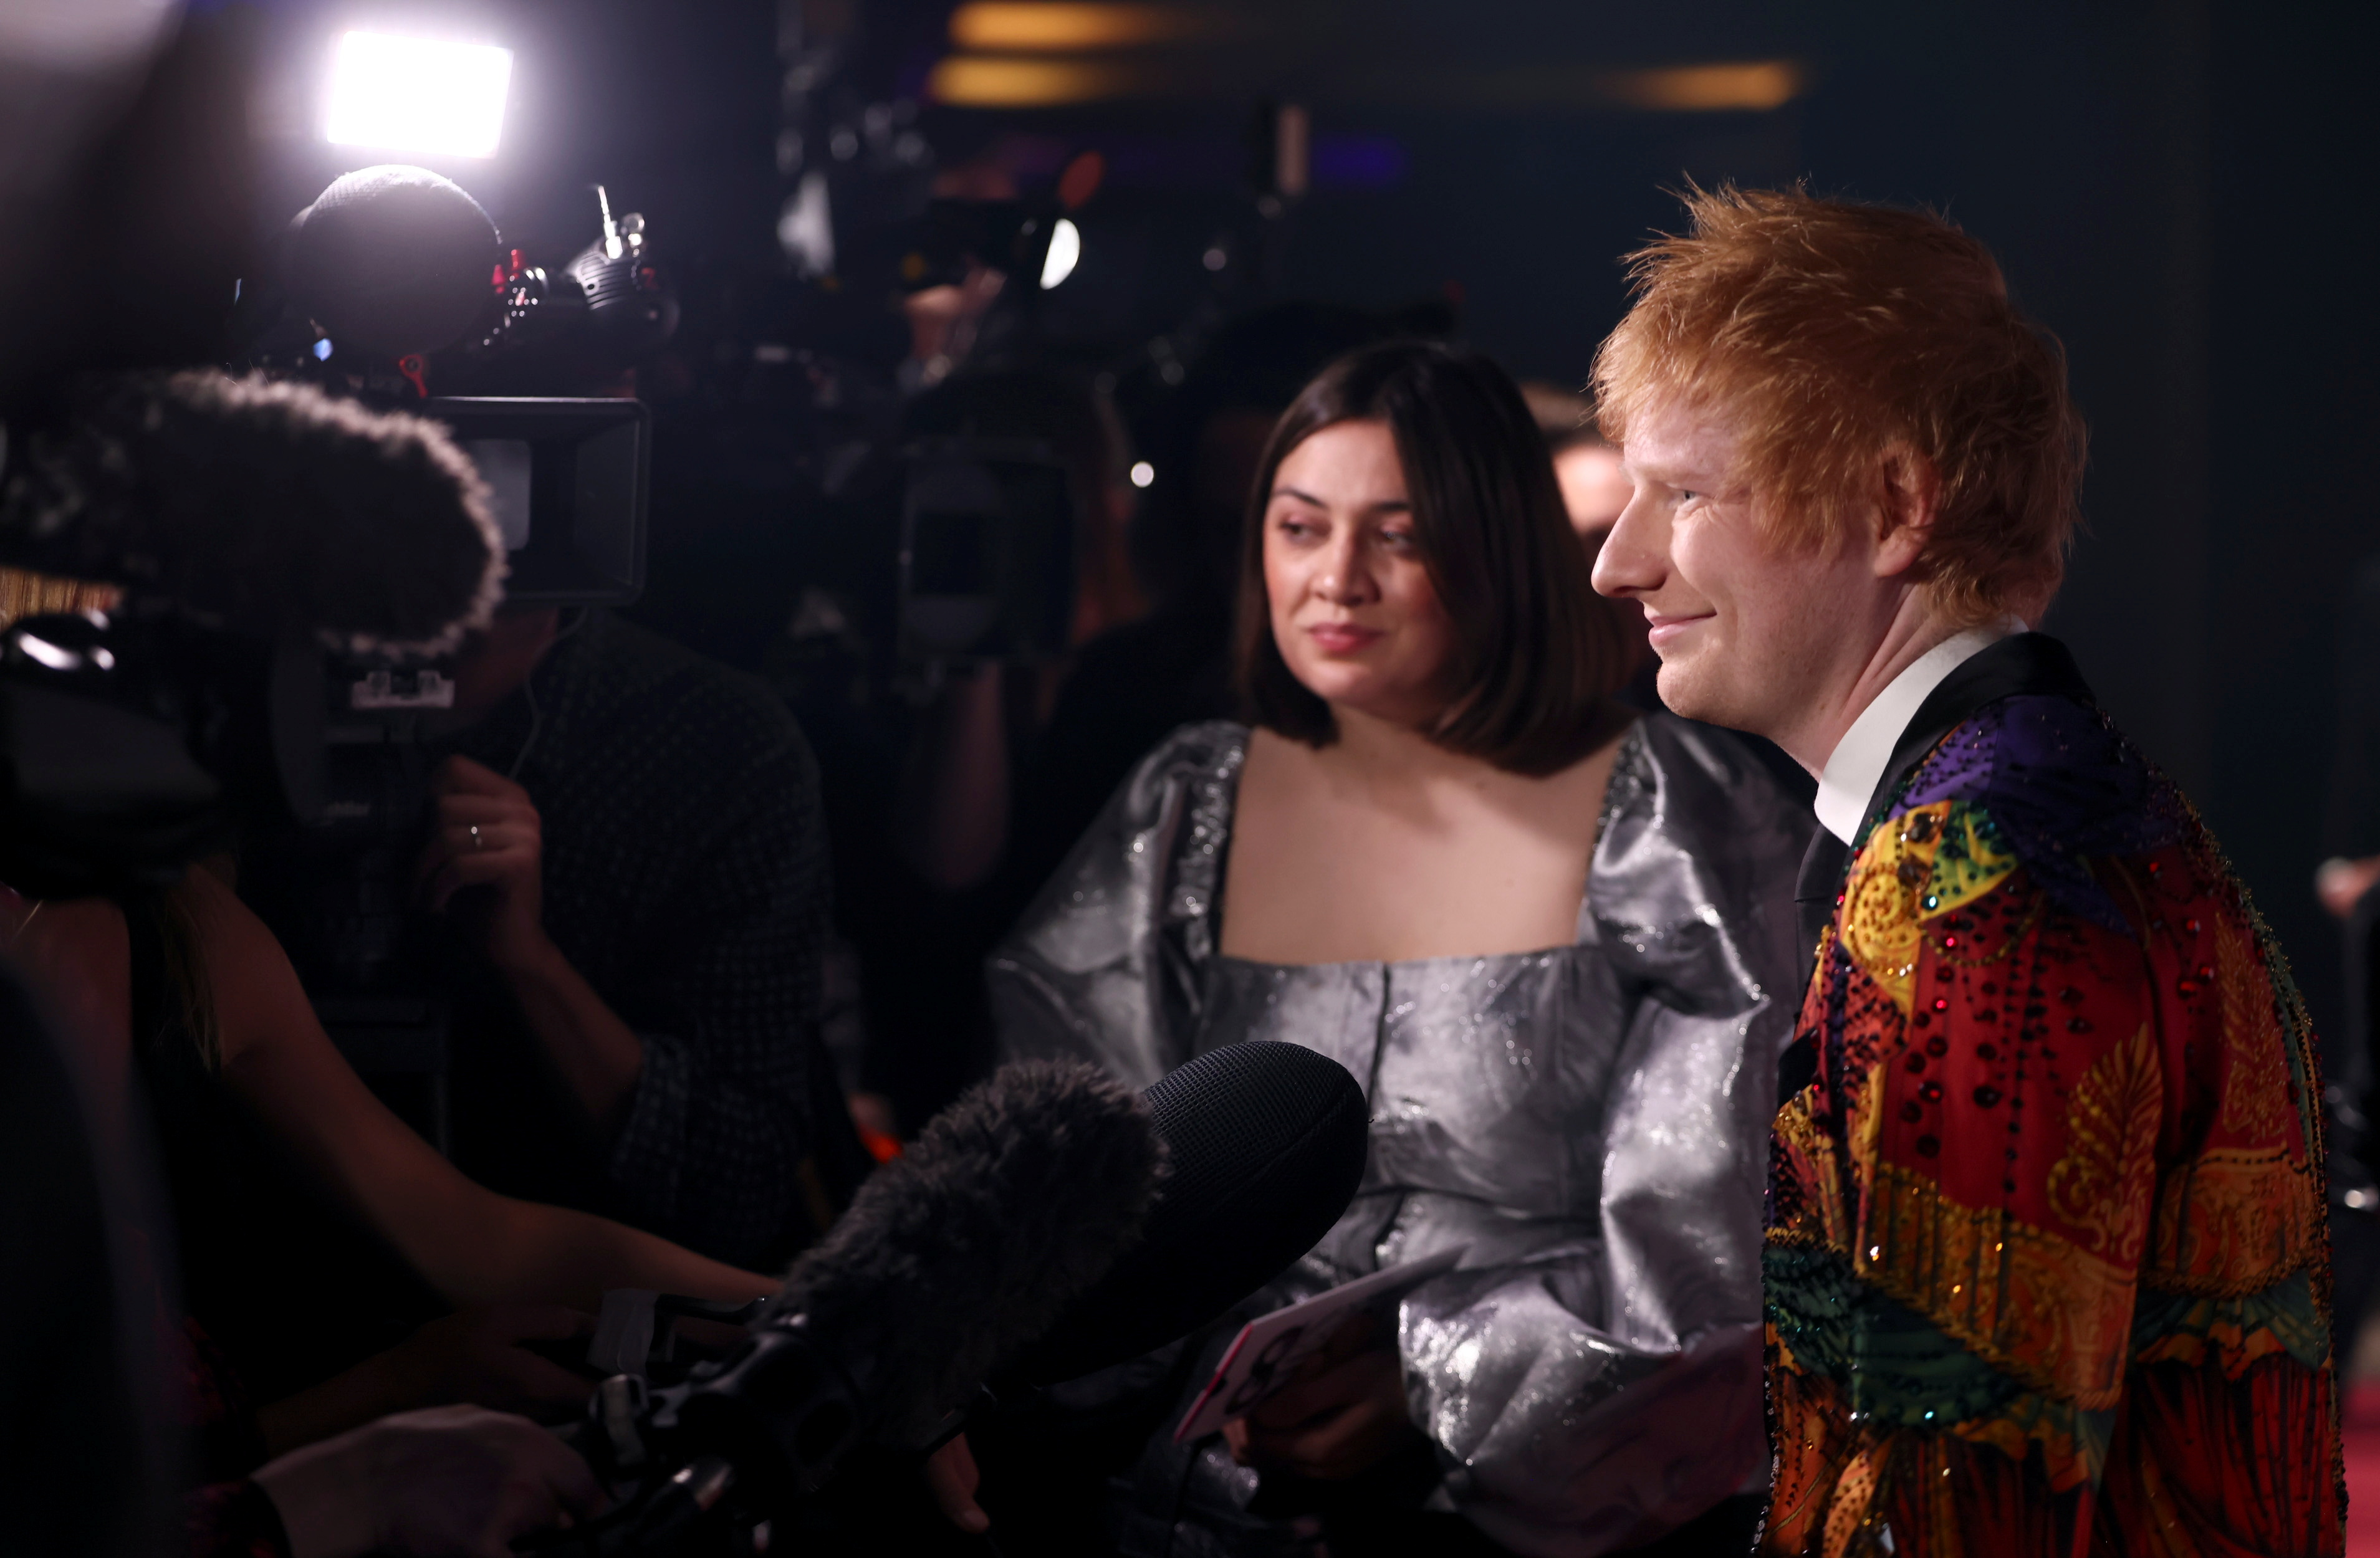 Ed Sheeran arrives to the GQ Men Of The Year Awards 2021 in London, Britain September 1, 2021. REUTERS/Henry Nicholls